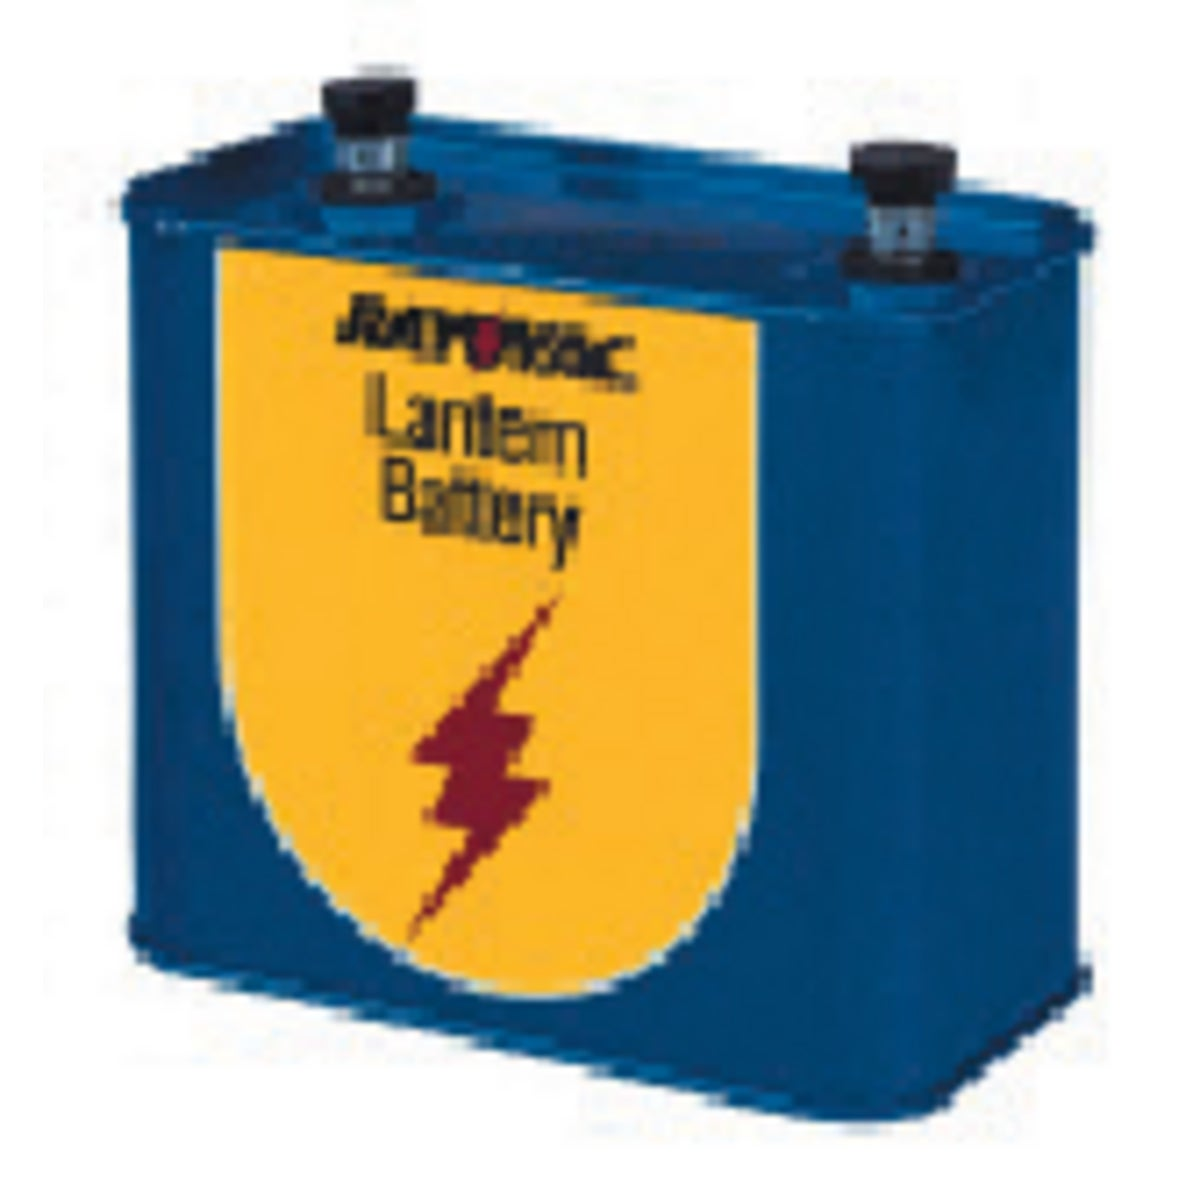 12V LANTERN BATTERY - 926 by Ray O Vac